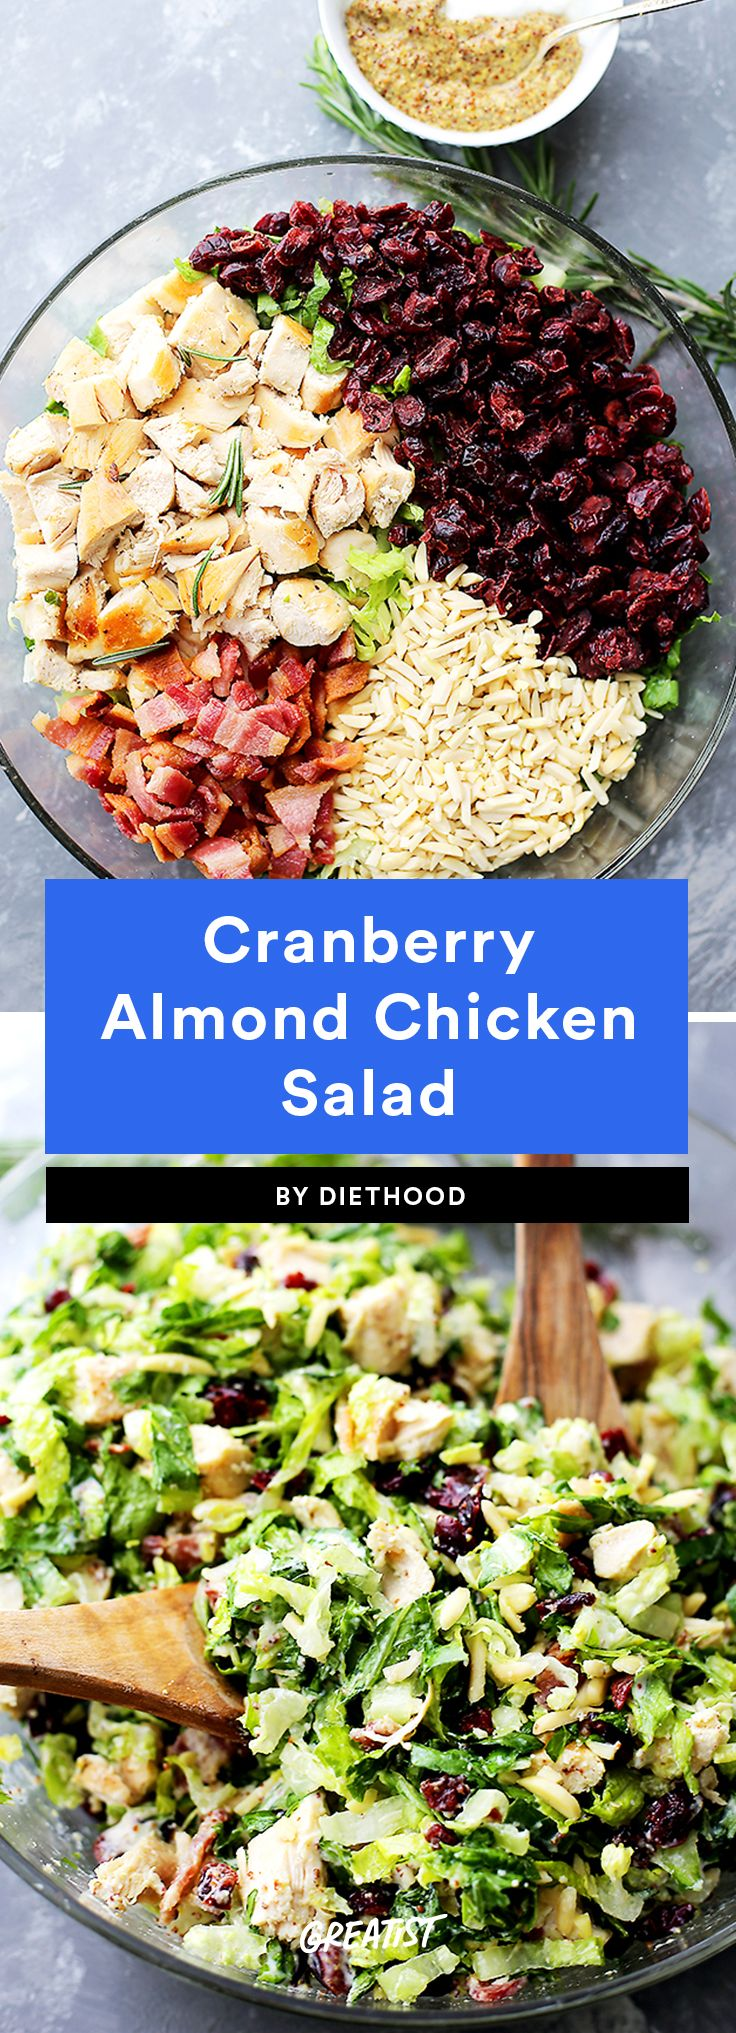 3. Cranberry Almond Chicken Salad #greatist https://greatist.com/eat/healthy-chicken-salad-recipes